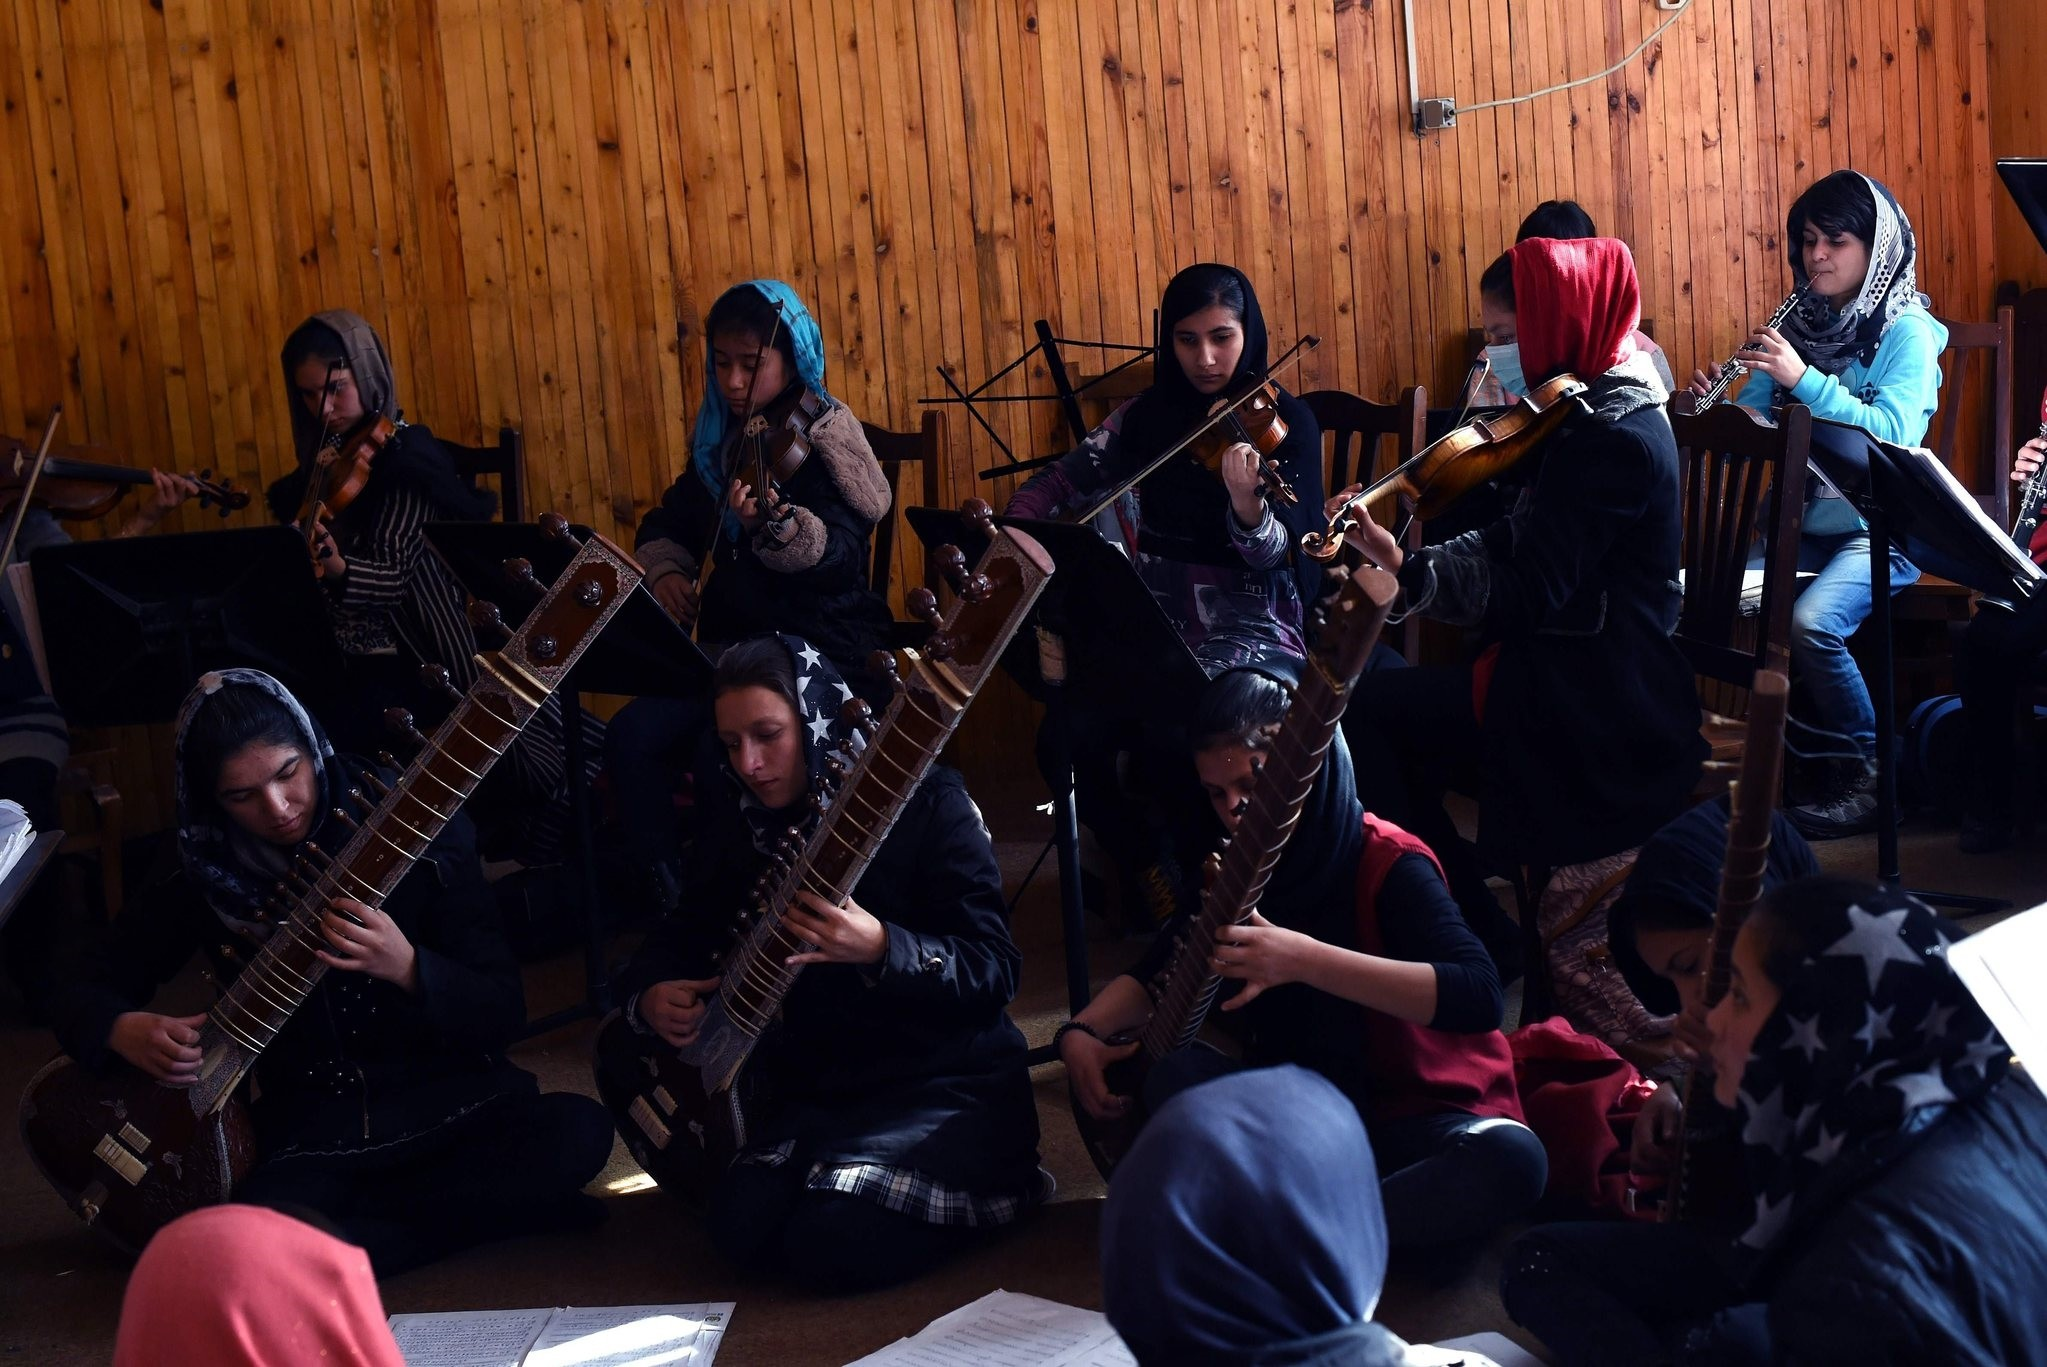 Afghan music students rehearse at The Afghanistan National Institute of Music in Kabul.